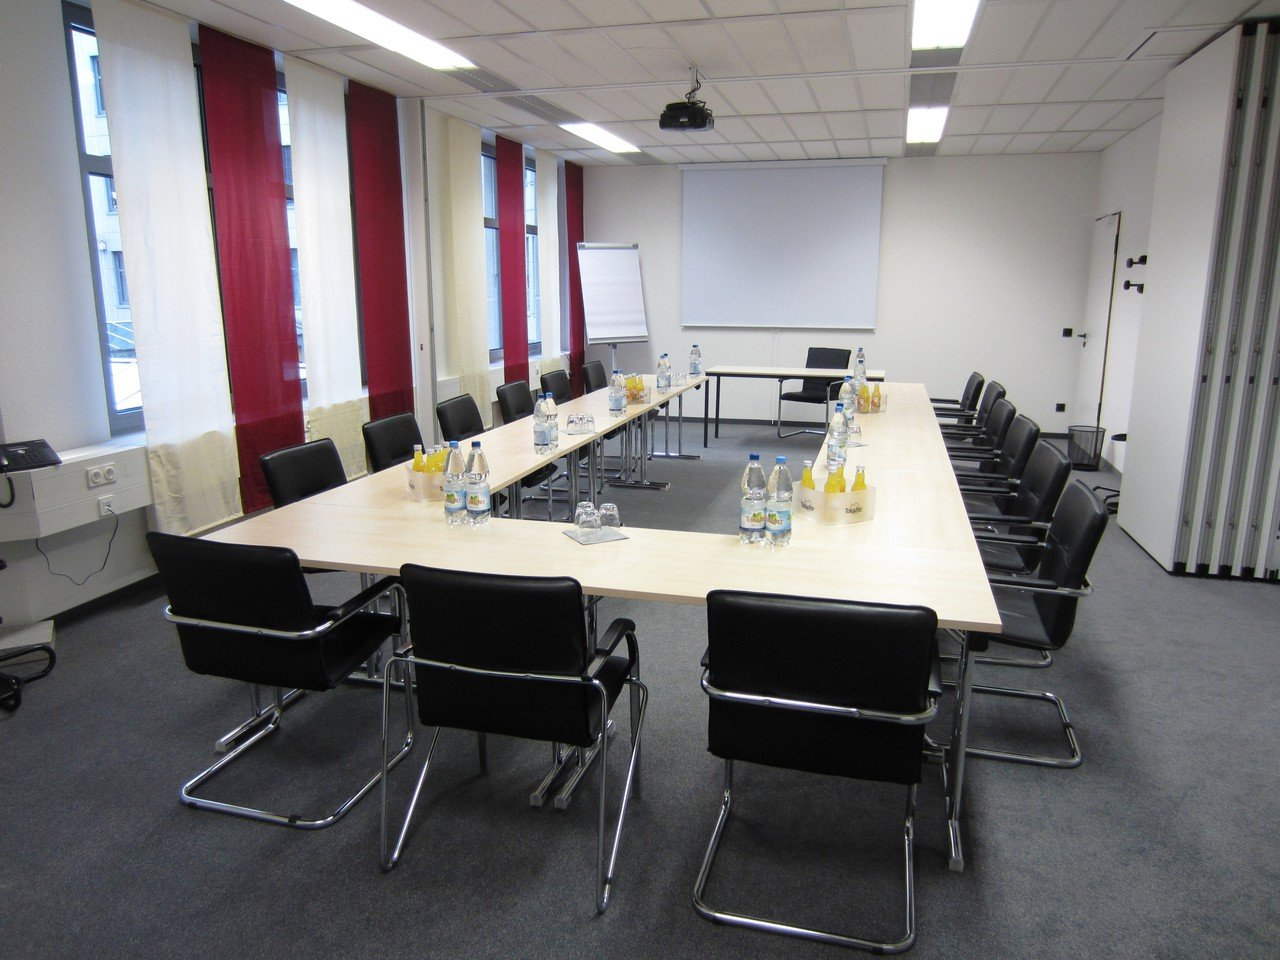 Stuttgart seminar rooms Meetingraum Business Center Airport Seminarraum image 0